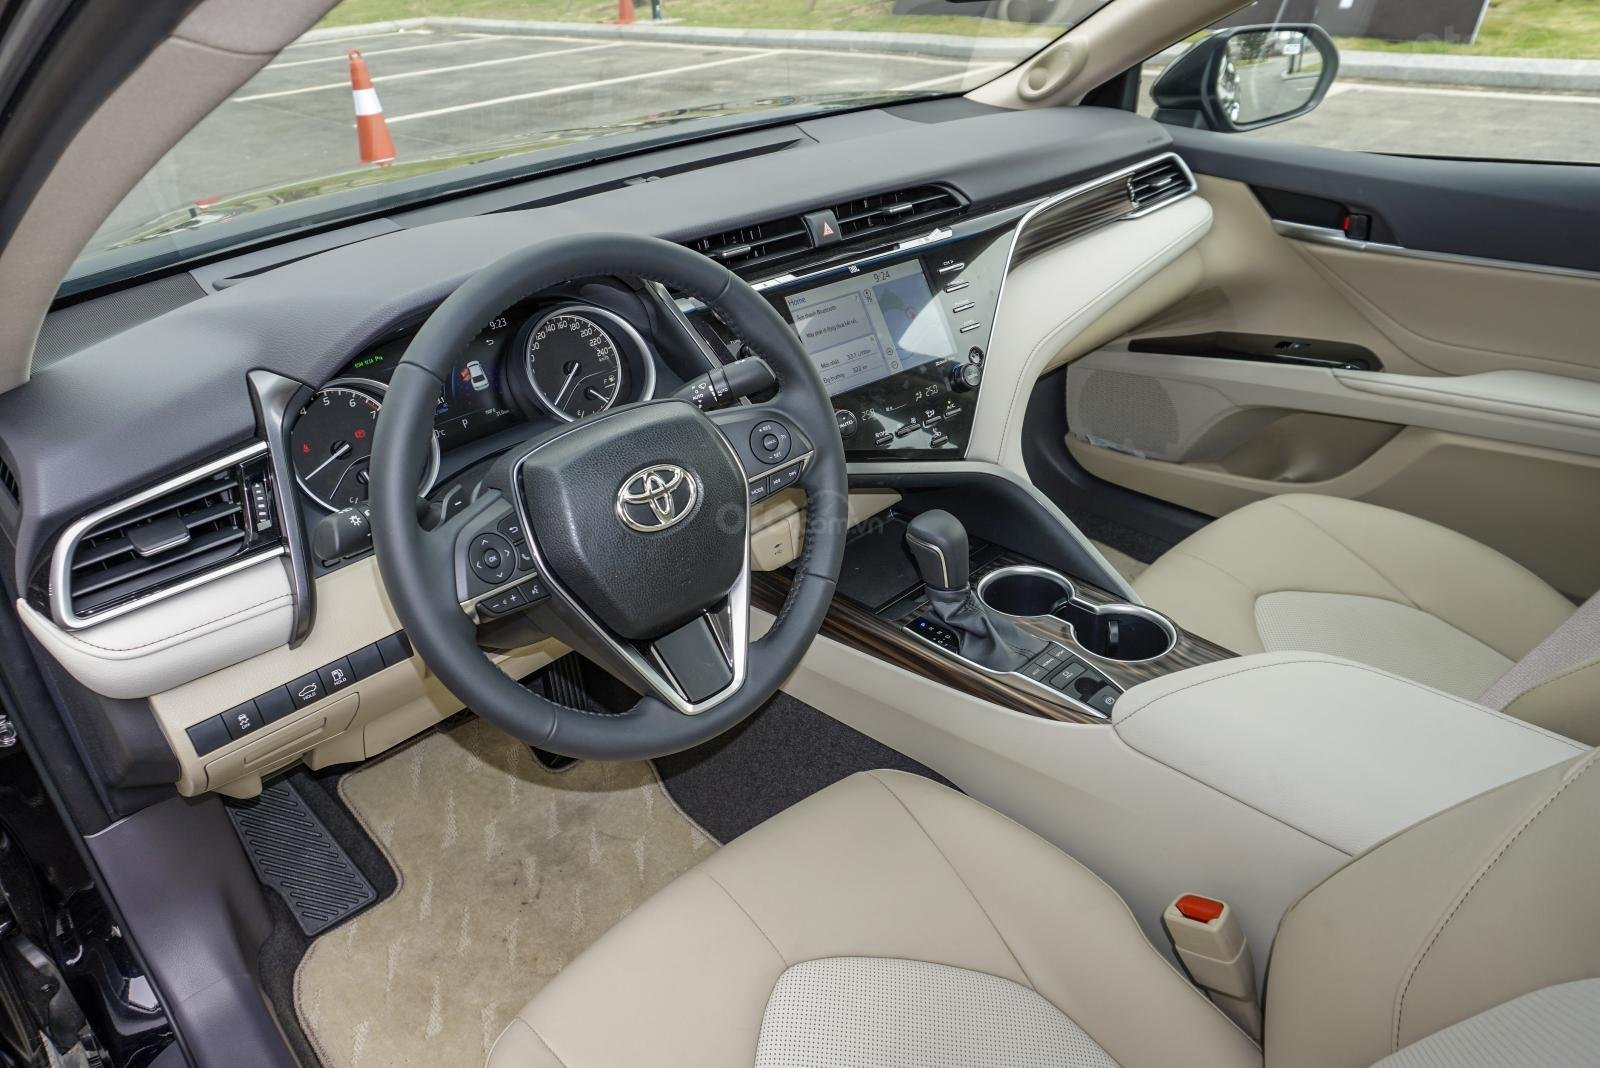 Toyota Camry 2.5Q: Cabin